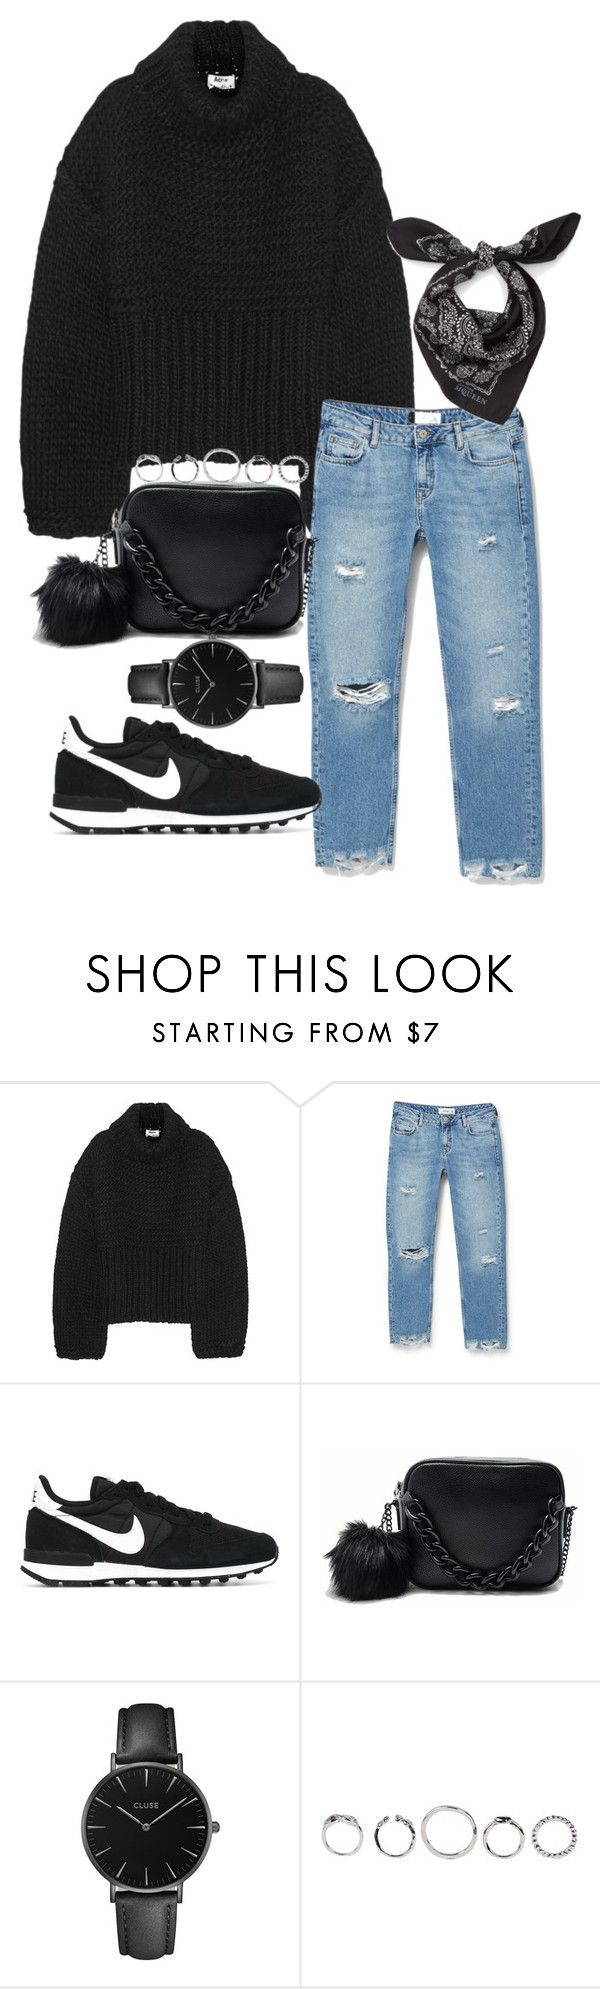 """""""#696"""" by blendingtwostyles ❤ liked on Polyvore featuring Acne Studios, MANGO, NIKE, CLUSE and Alexander McQueen"""